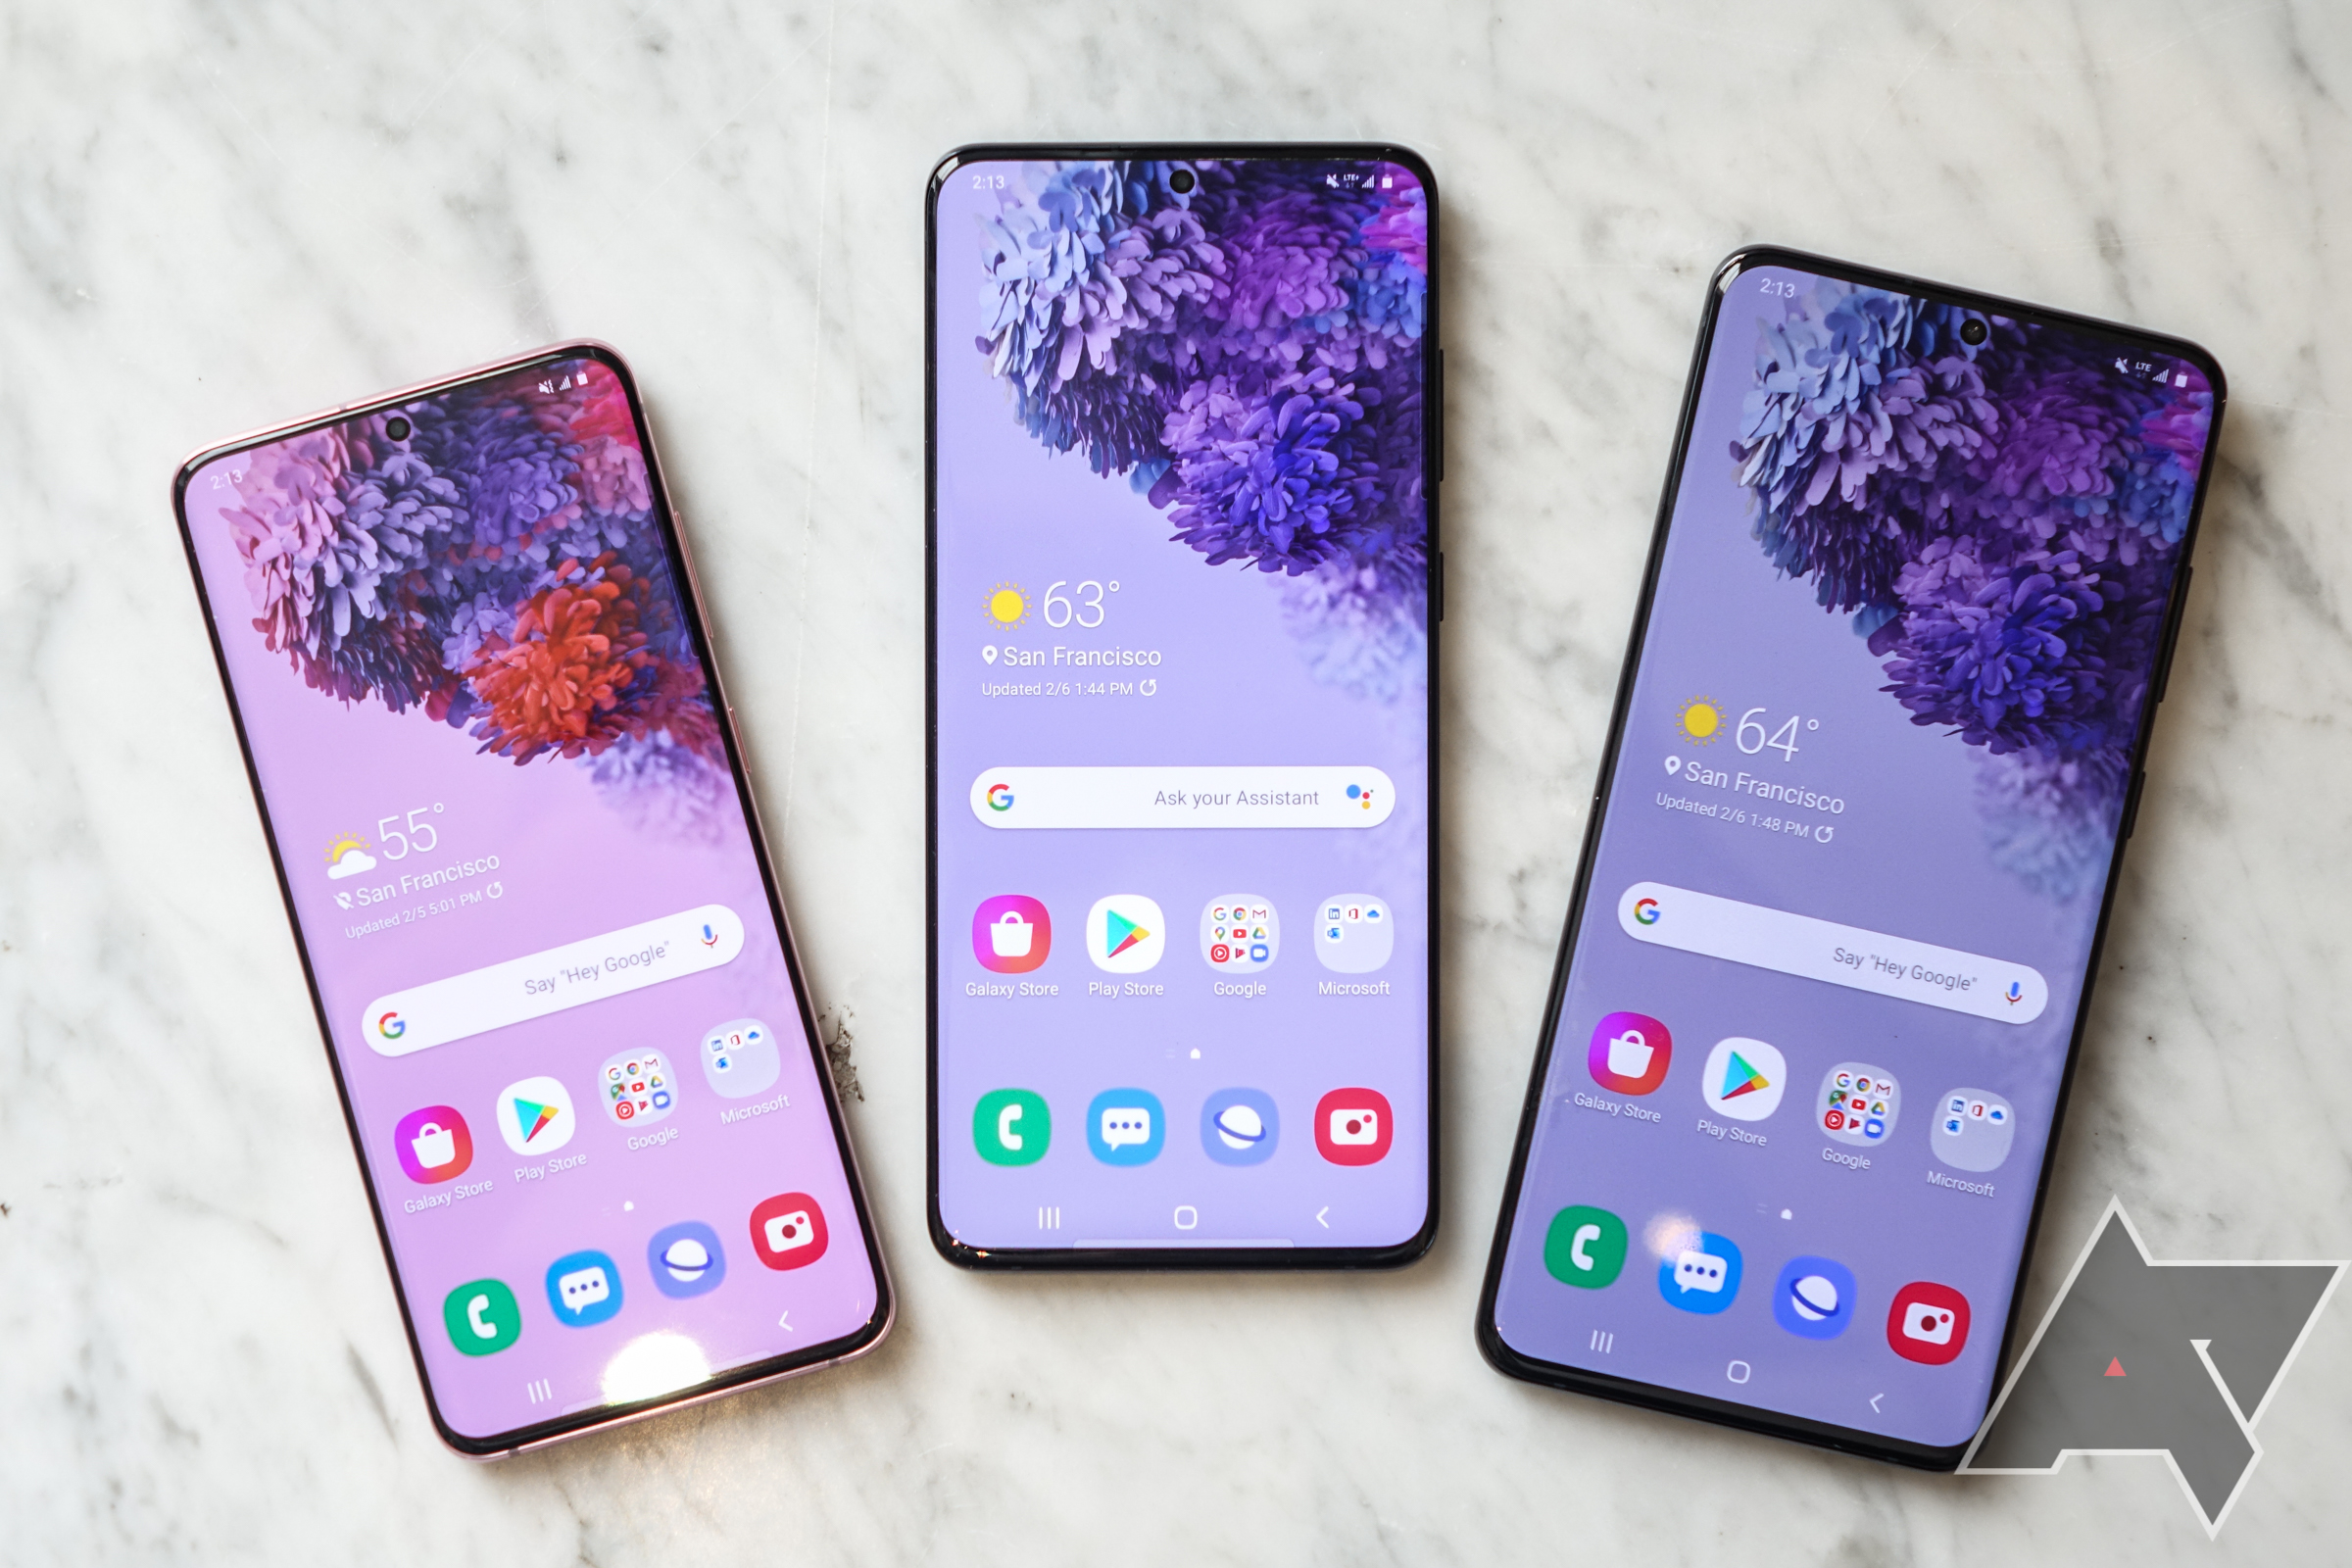 Galaxy S20 vs S20+ vs S20 Ultra: What's the difference?